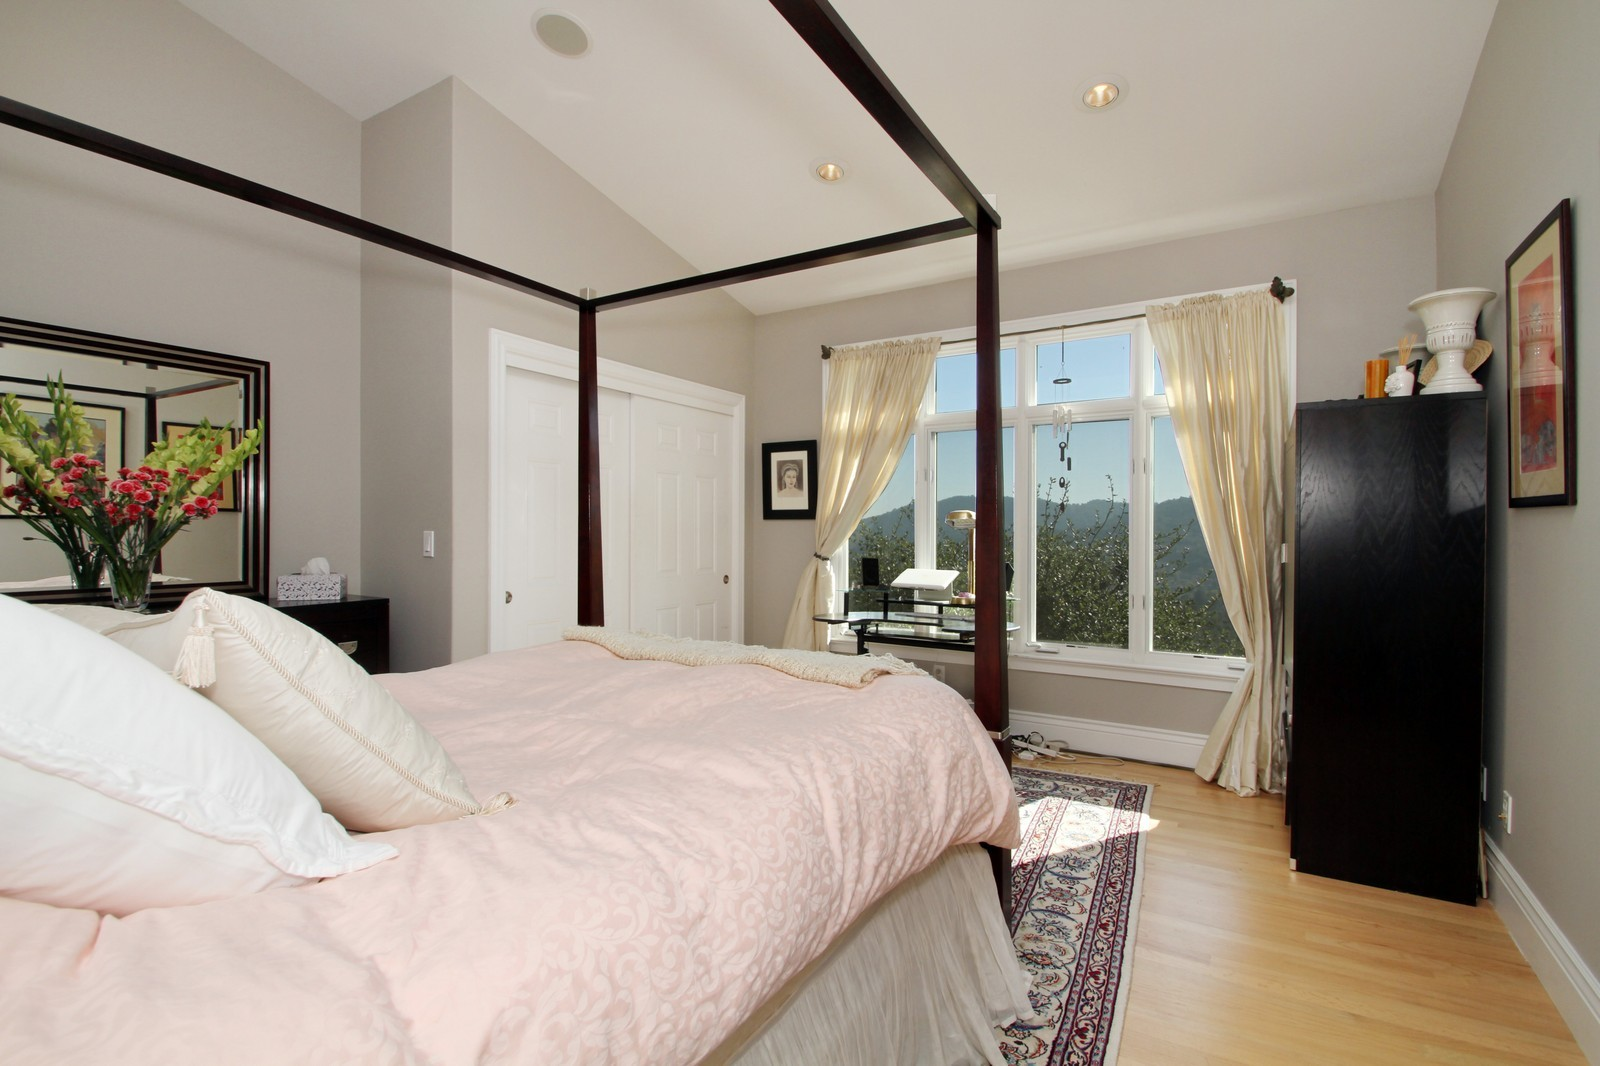 Real Estate Photography - 73 Upper Toyon Drive, Kentfield, CA, 94904 - Bedroom